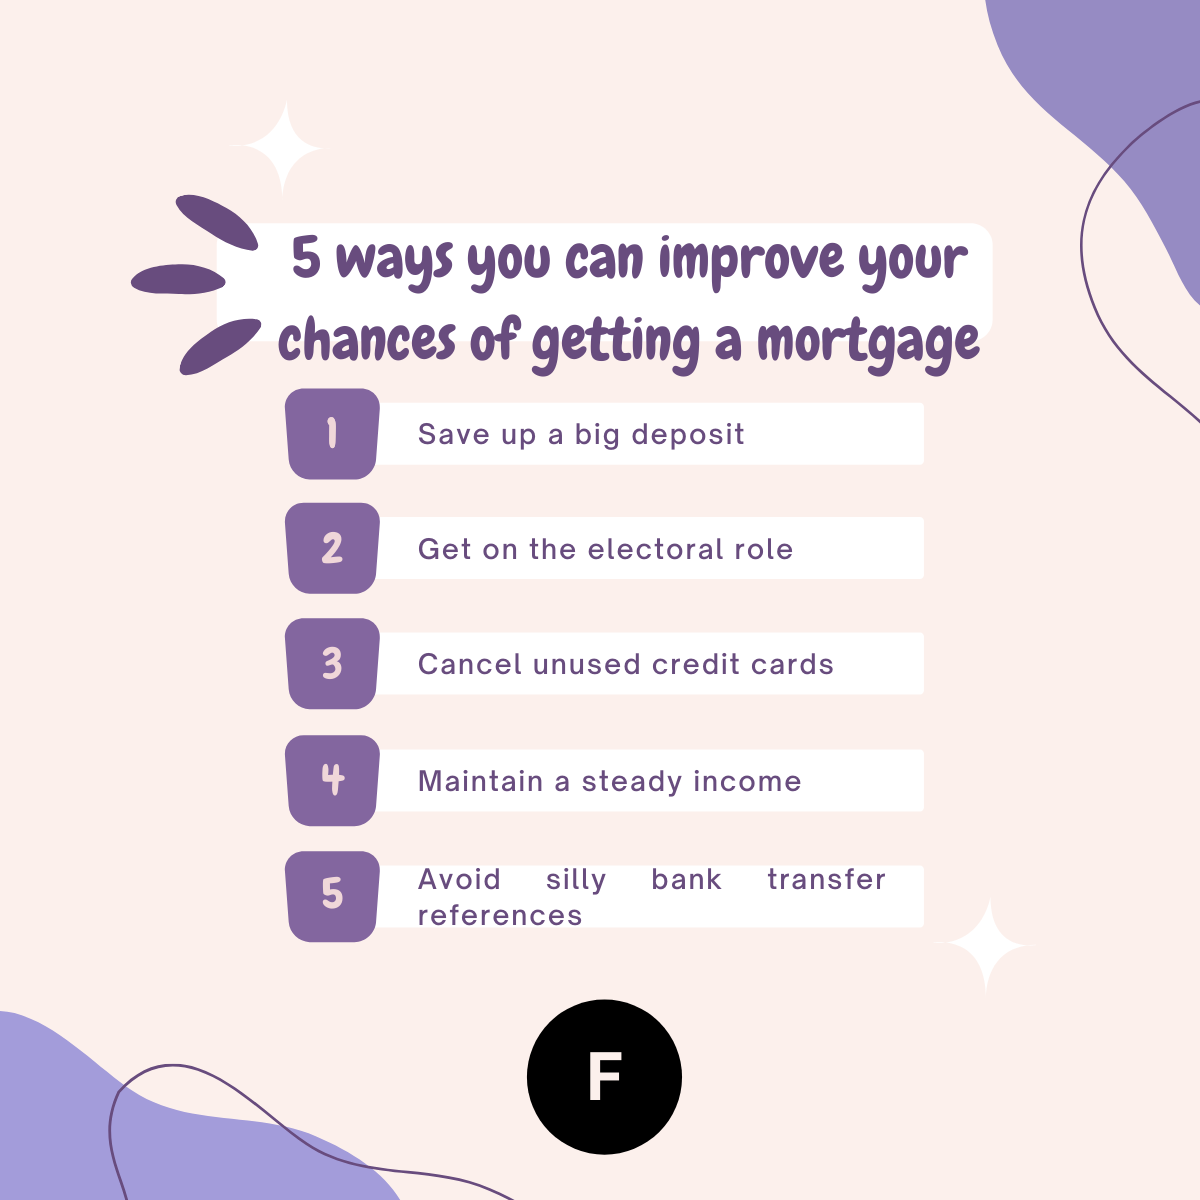 first time buyer mortgage mortgage guarantee scheme stamp duty apply for a mortgage